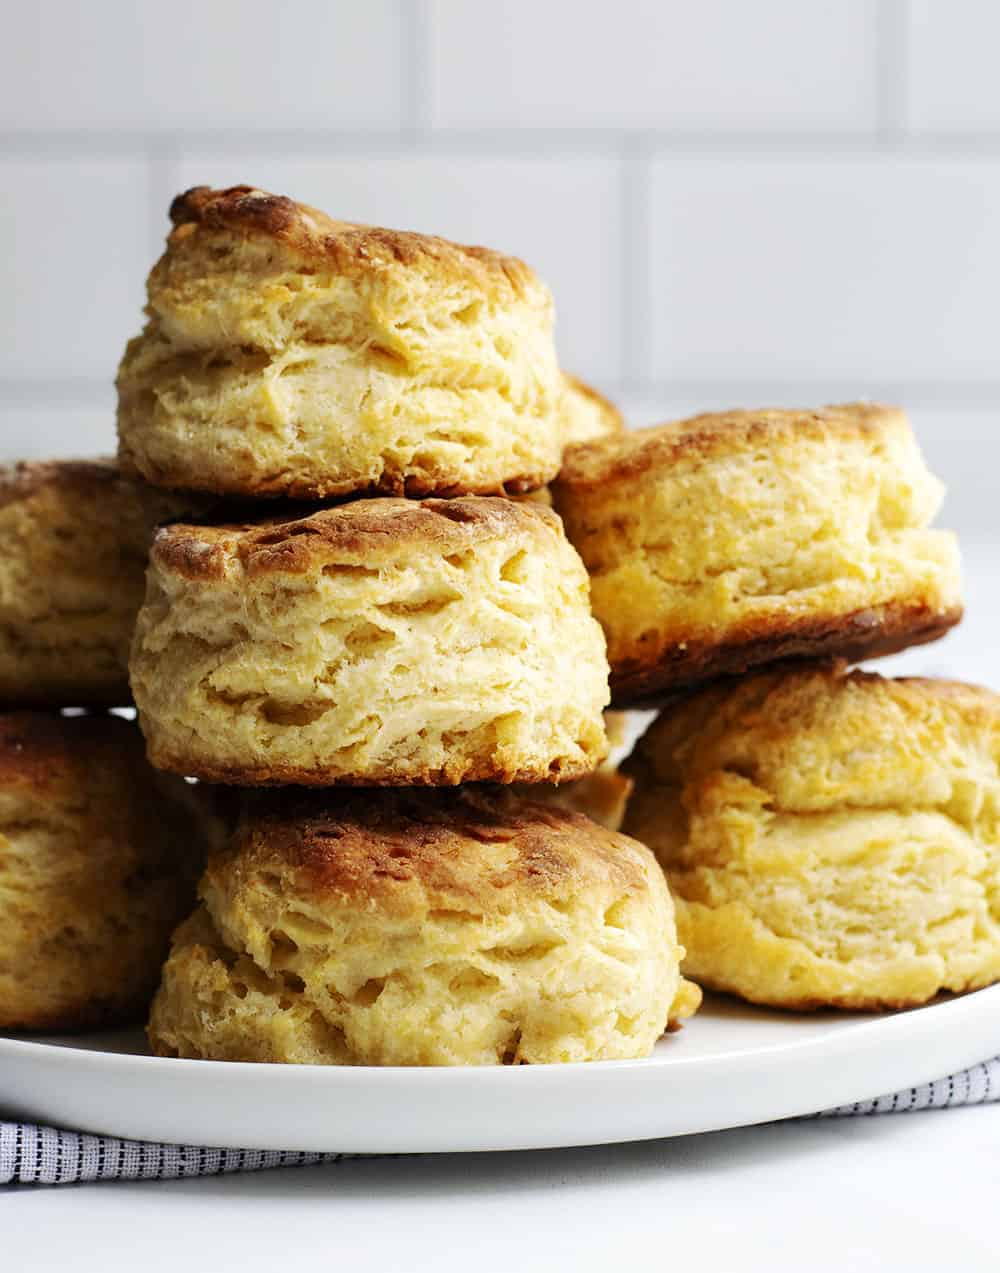 homemade biscuits stacked on a plate